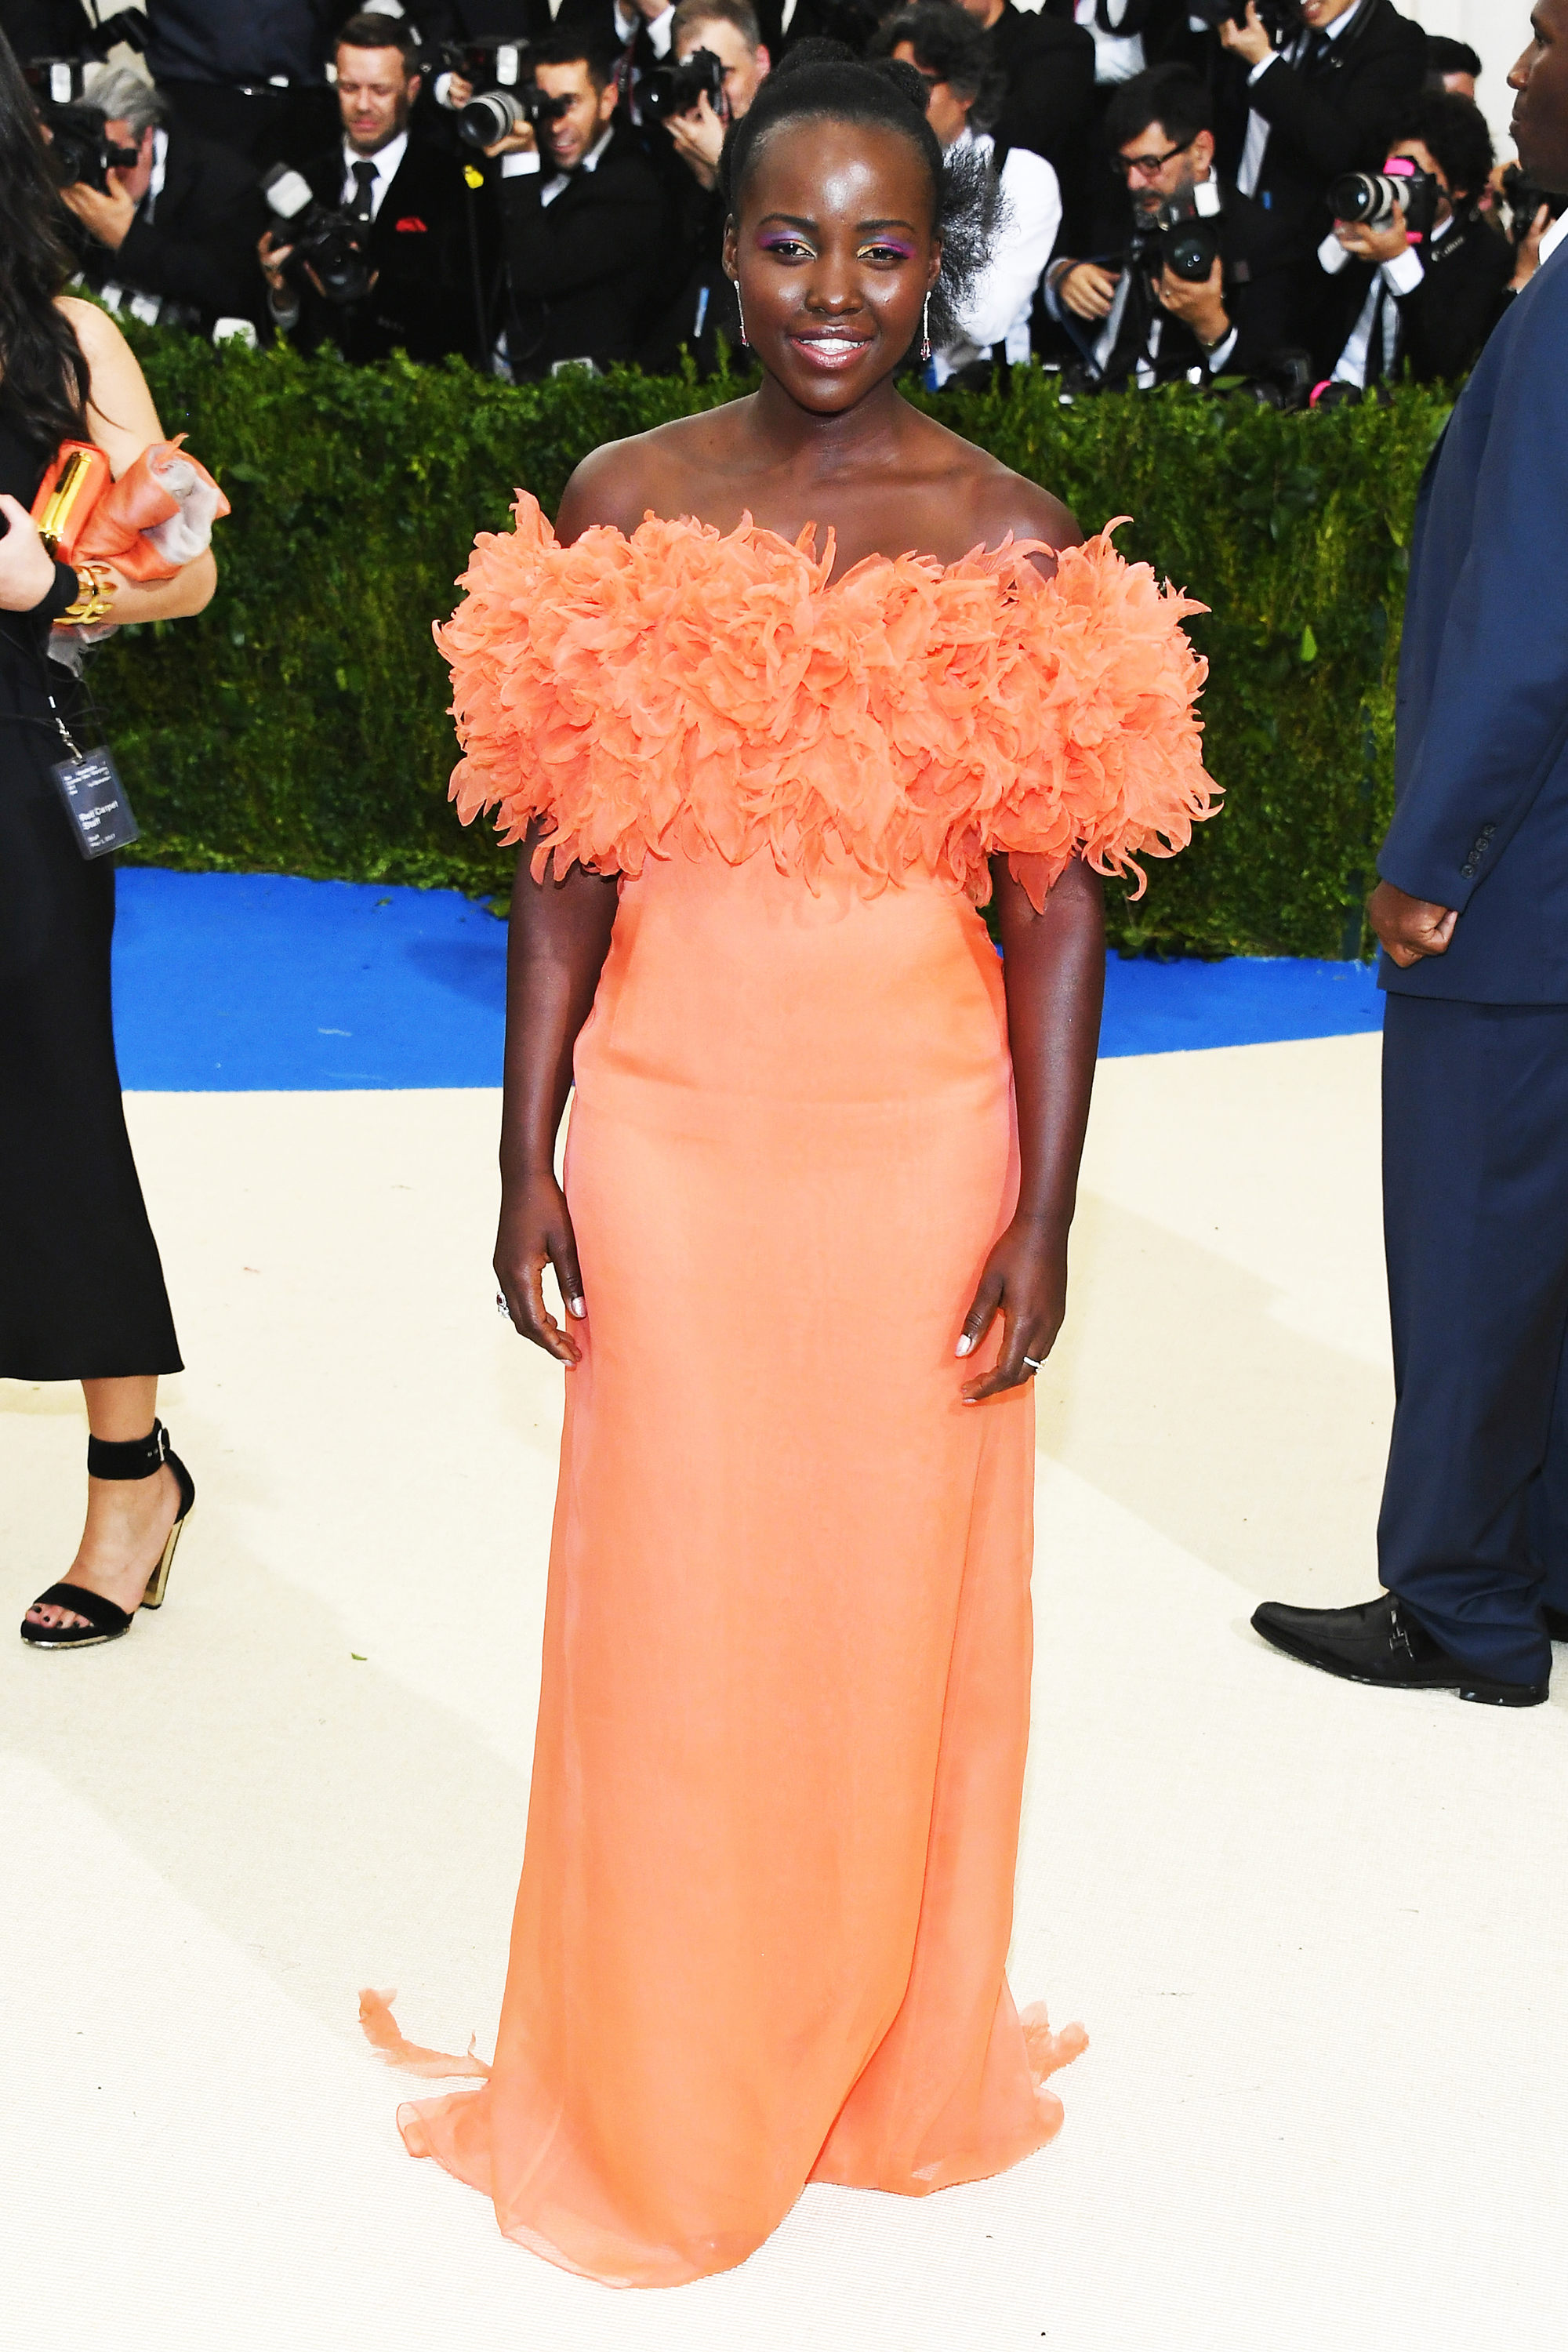 Lupita Nyong'o attends The Metropolitan Museum of Art's Costume Institute benefit gala celebrating the opening of the Rei Kawakubo/Comme des Garçons: Art of the In-Between exhibition in New York City, on May 1, 2017.